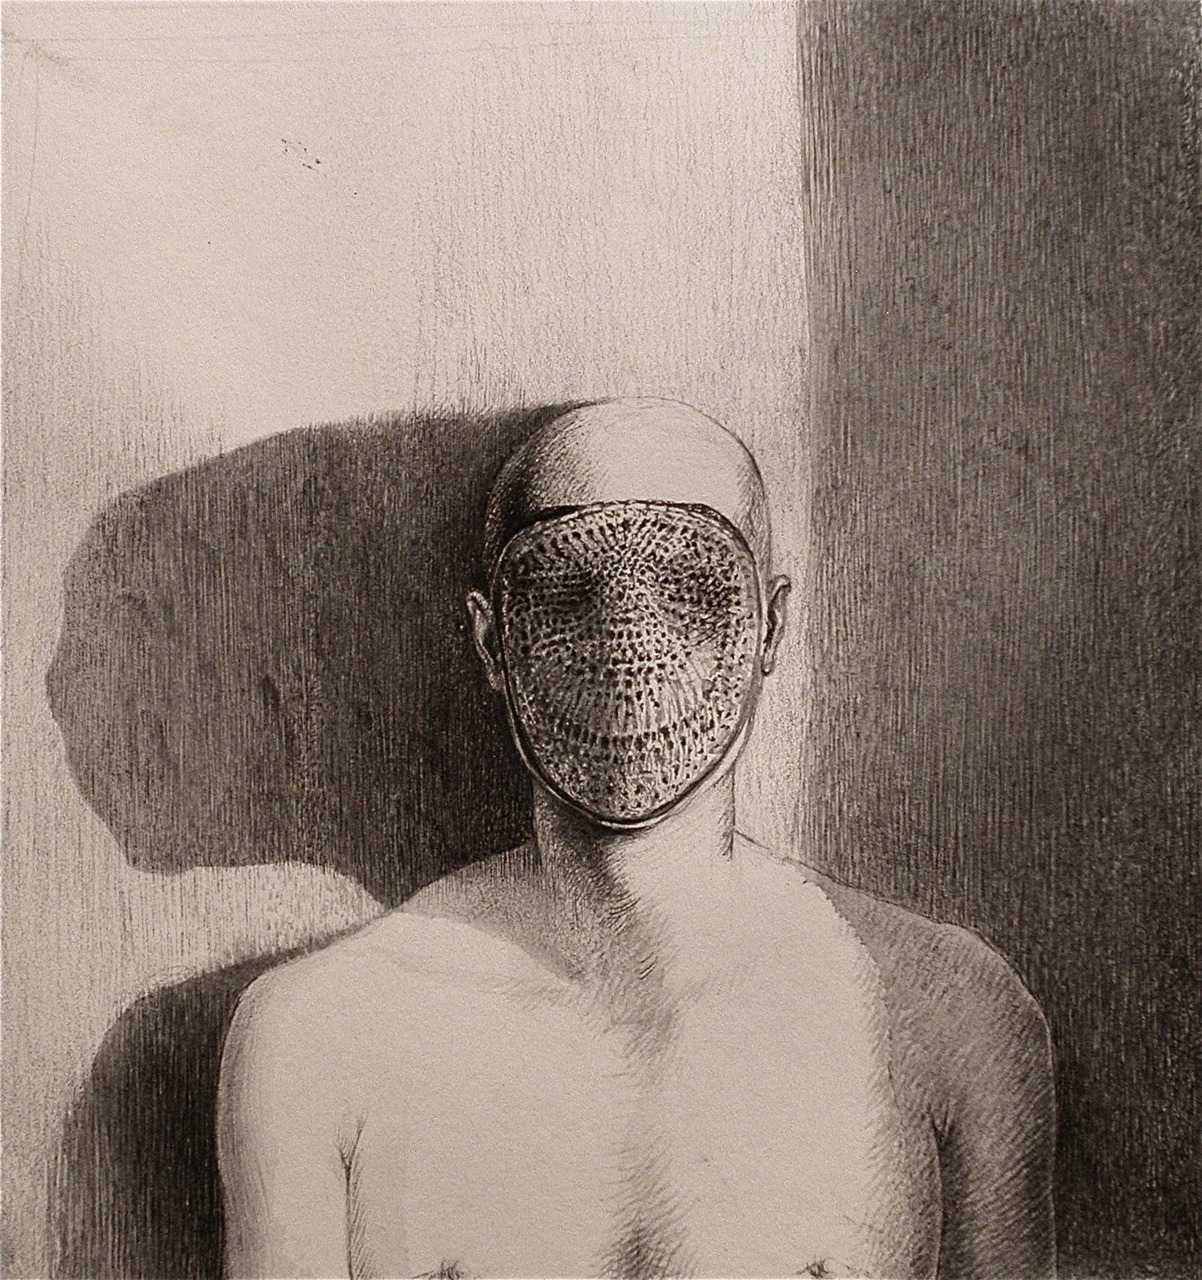 red-lipstick:  Agostino Arrivabene - Study, 2011           Drawings: Ink on Paper on Moleskine